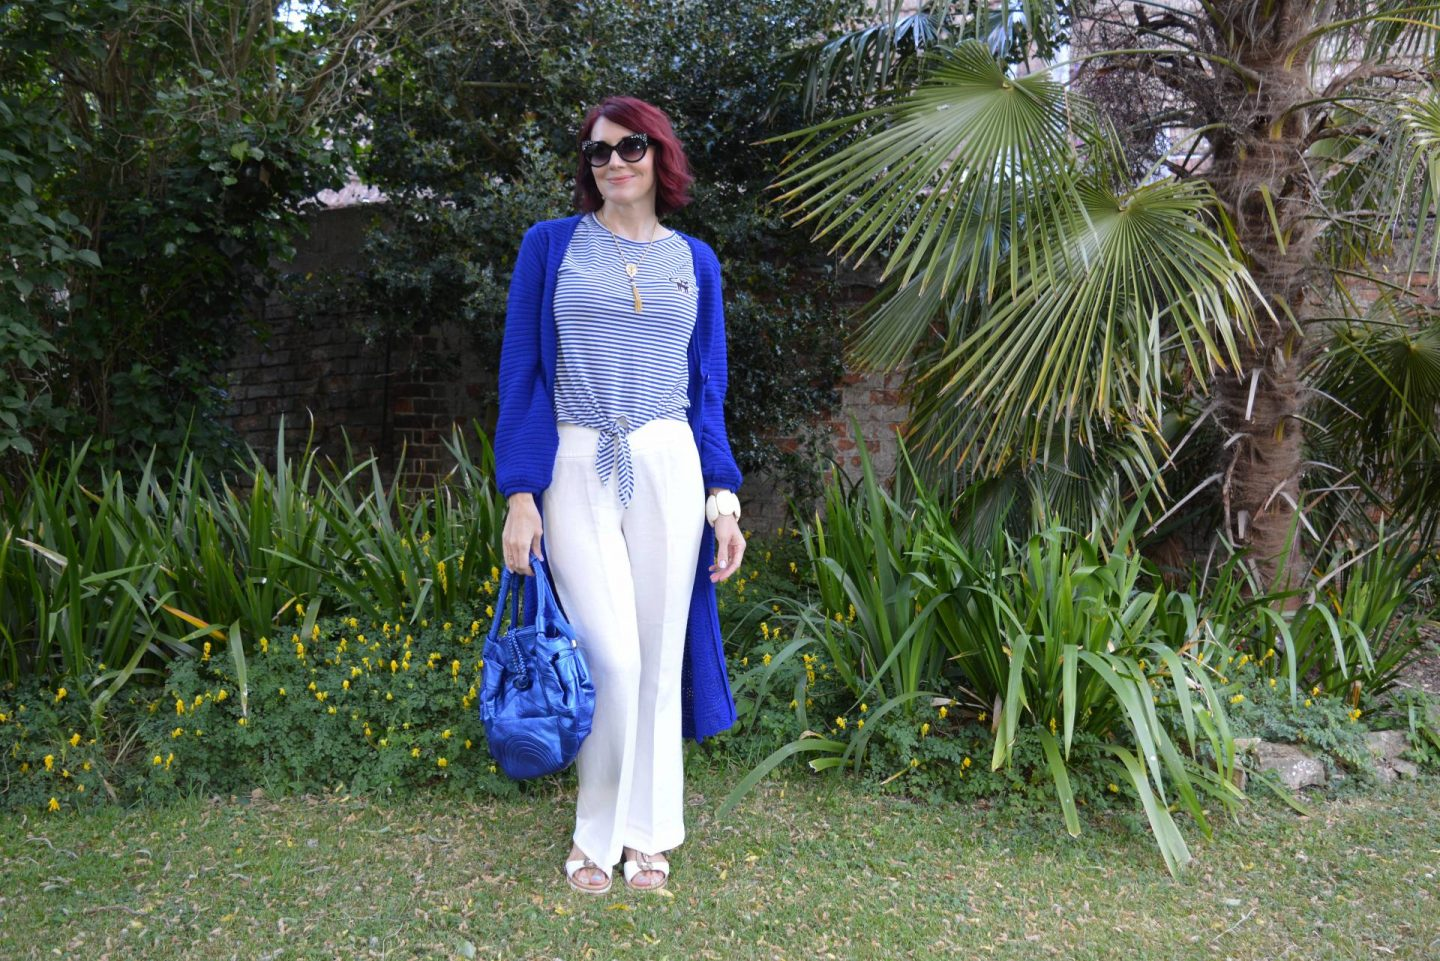 Stylish Monday link up: Summer Whites